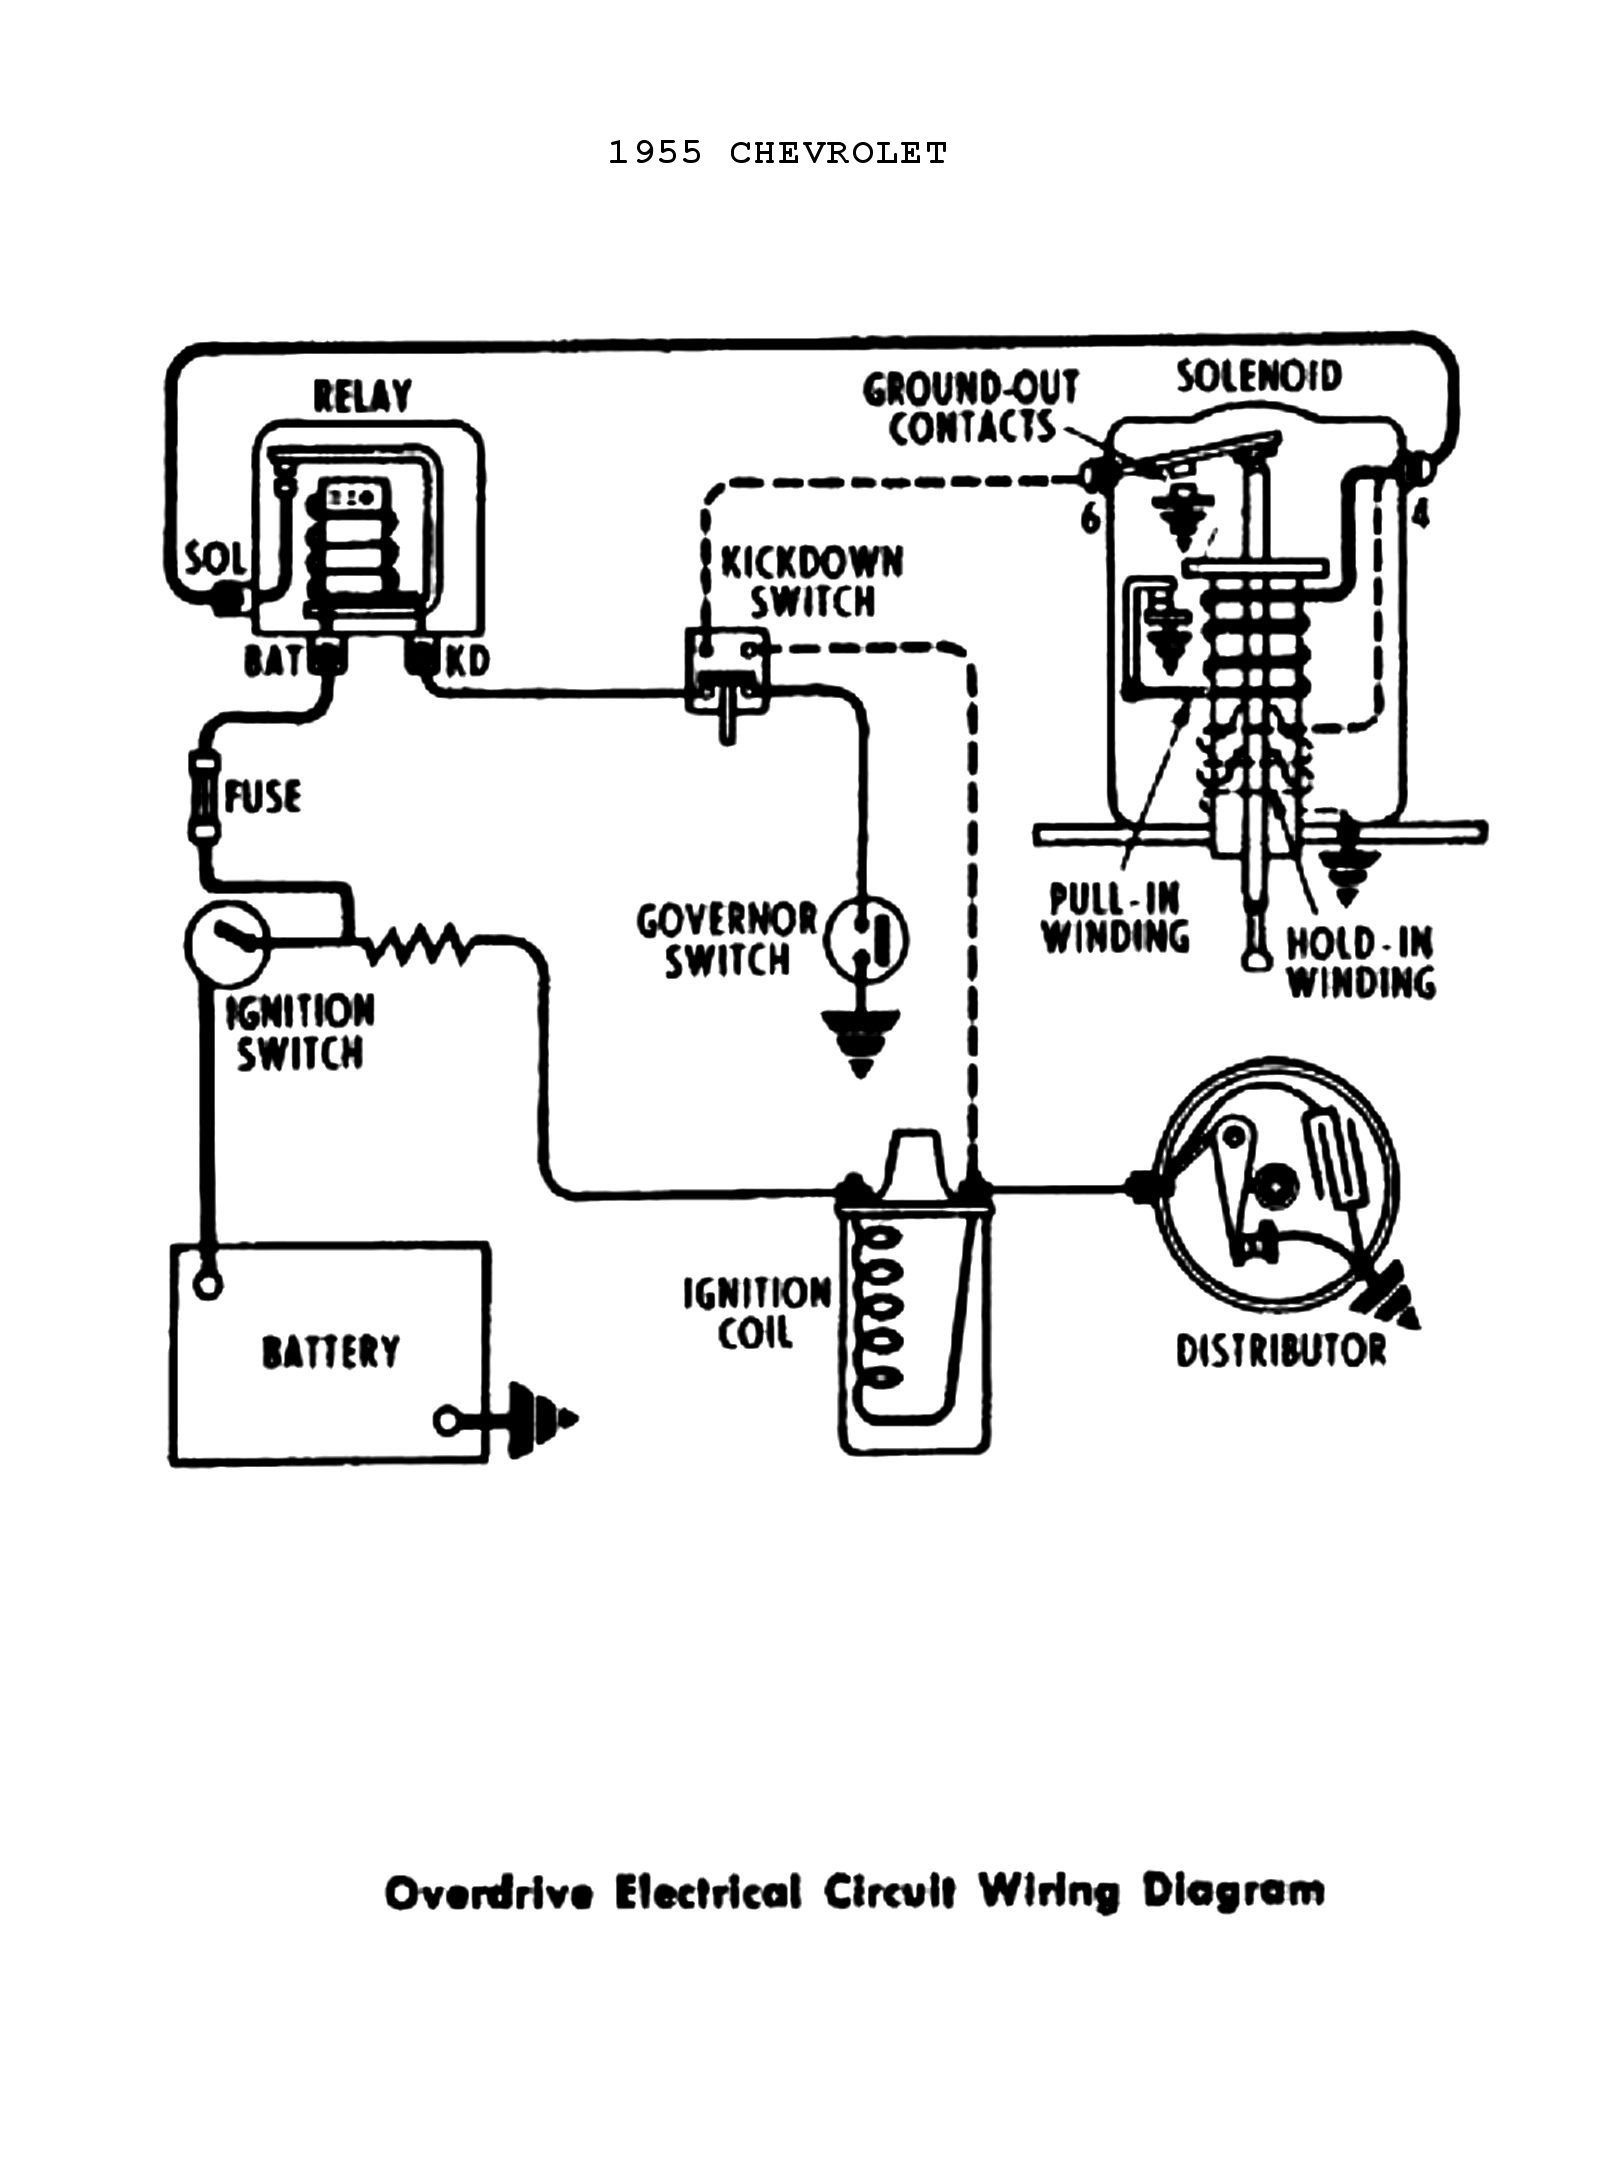 hight resolution of 1955 chevy bel air turn signal wiring diagram electrical work rh wiringdiagramshop today 1955 chevrolet bel 1959